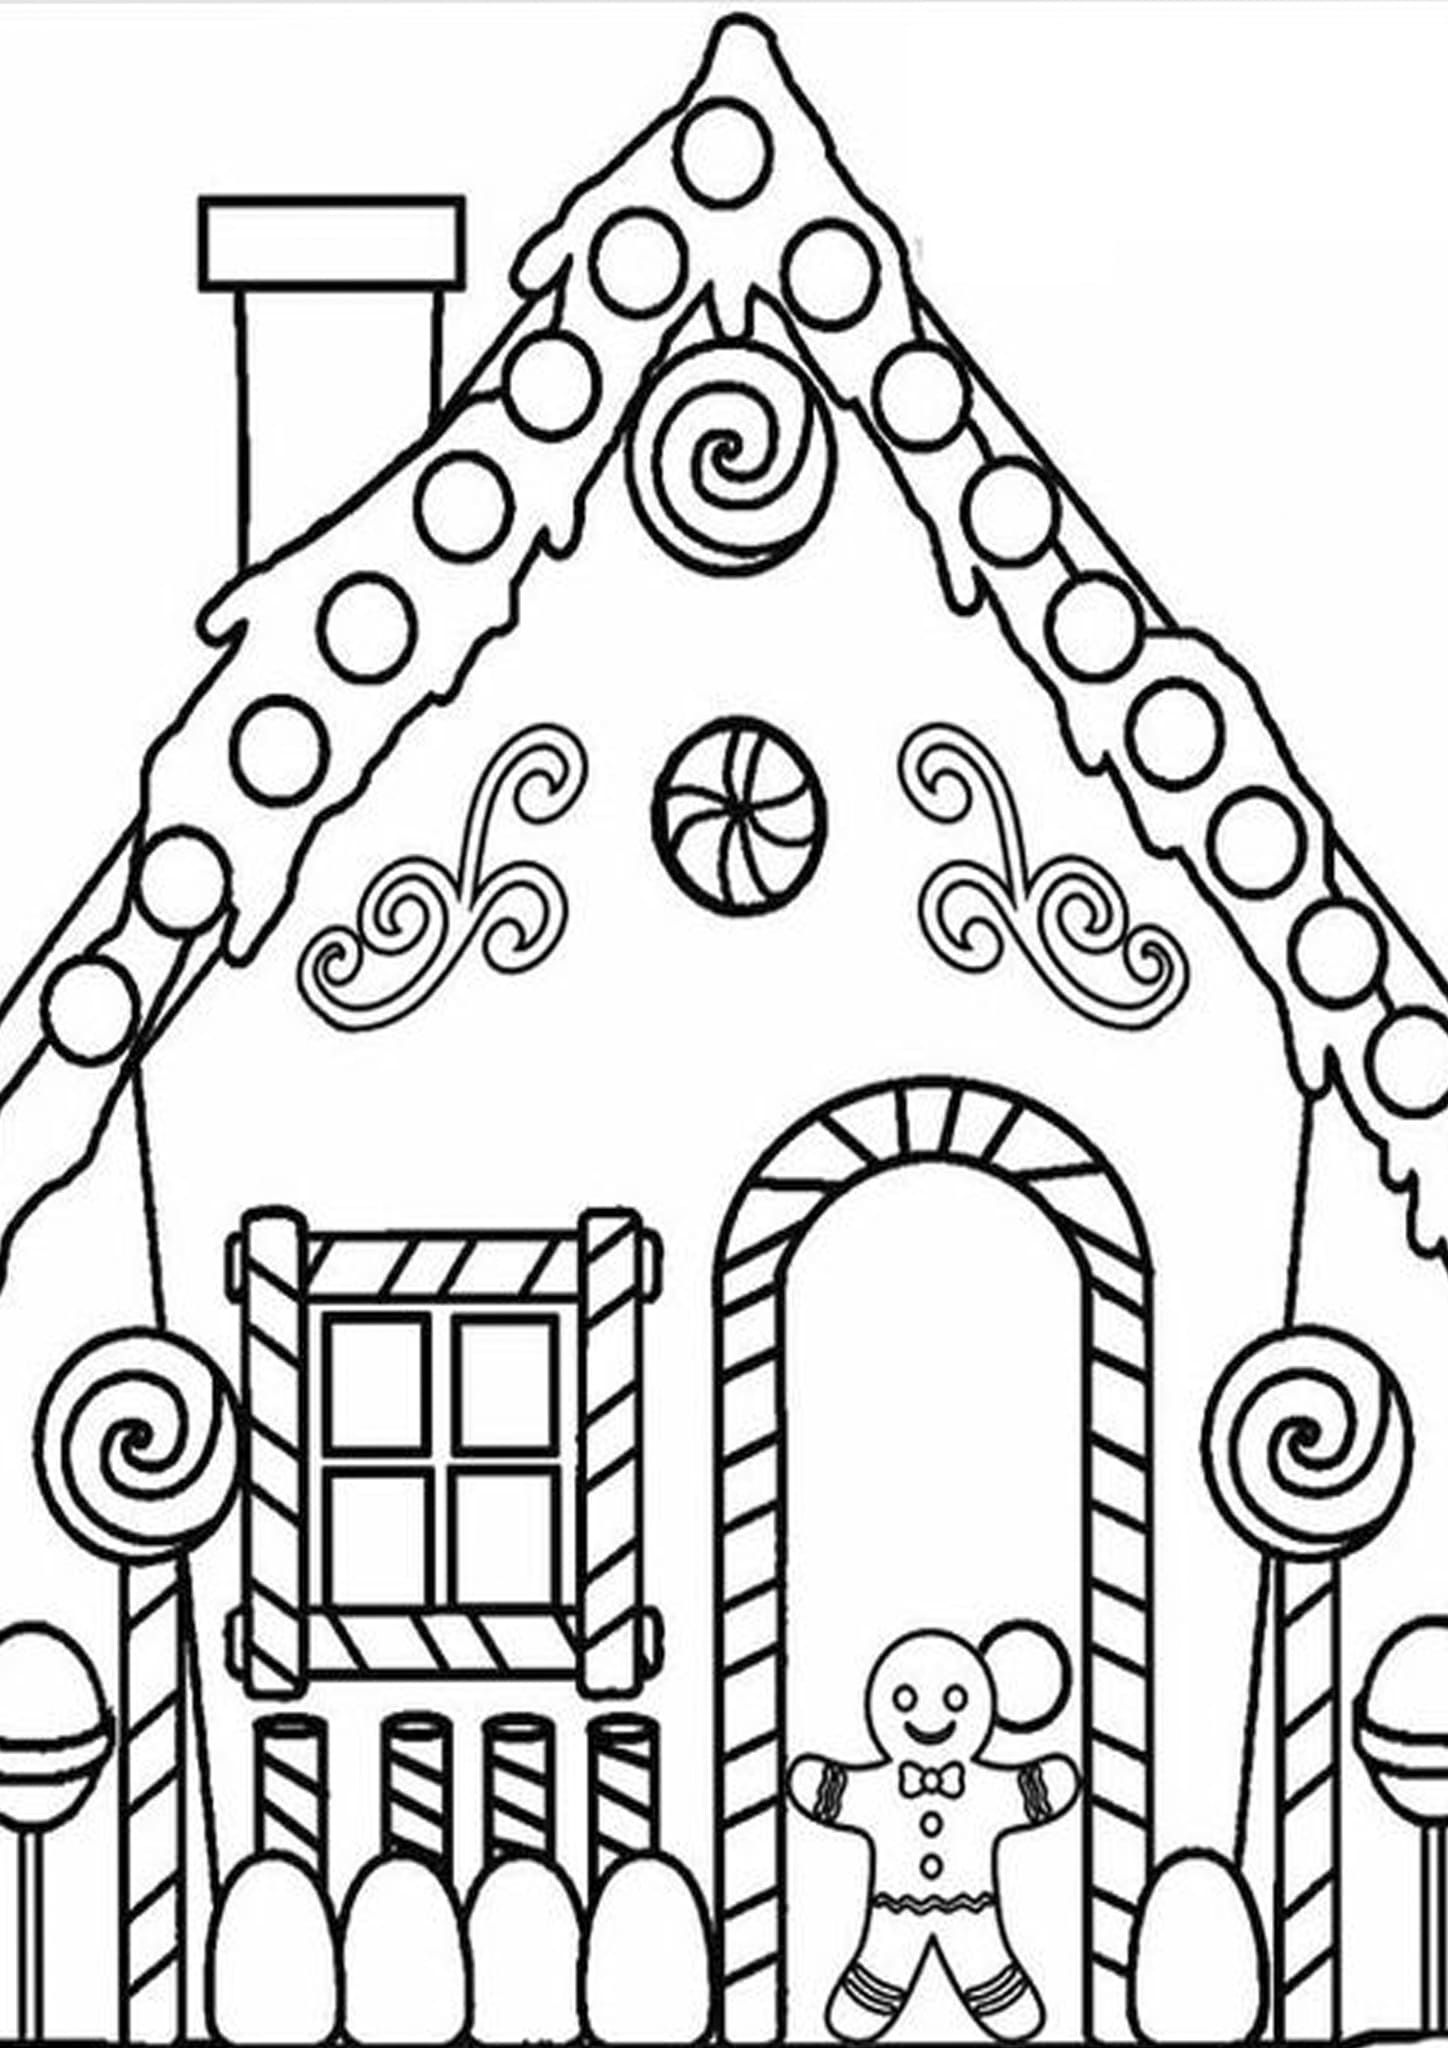 Free Easy To Print Candy Coloring Pages Free Christmas Coloring Pages Christmas Coloring Sheets Christmas Coloring Books